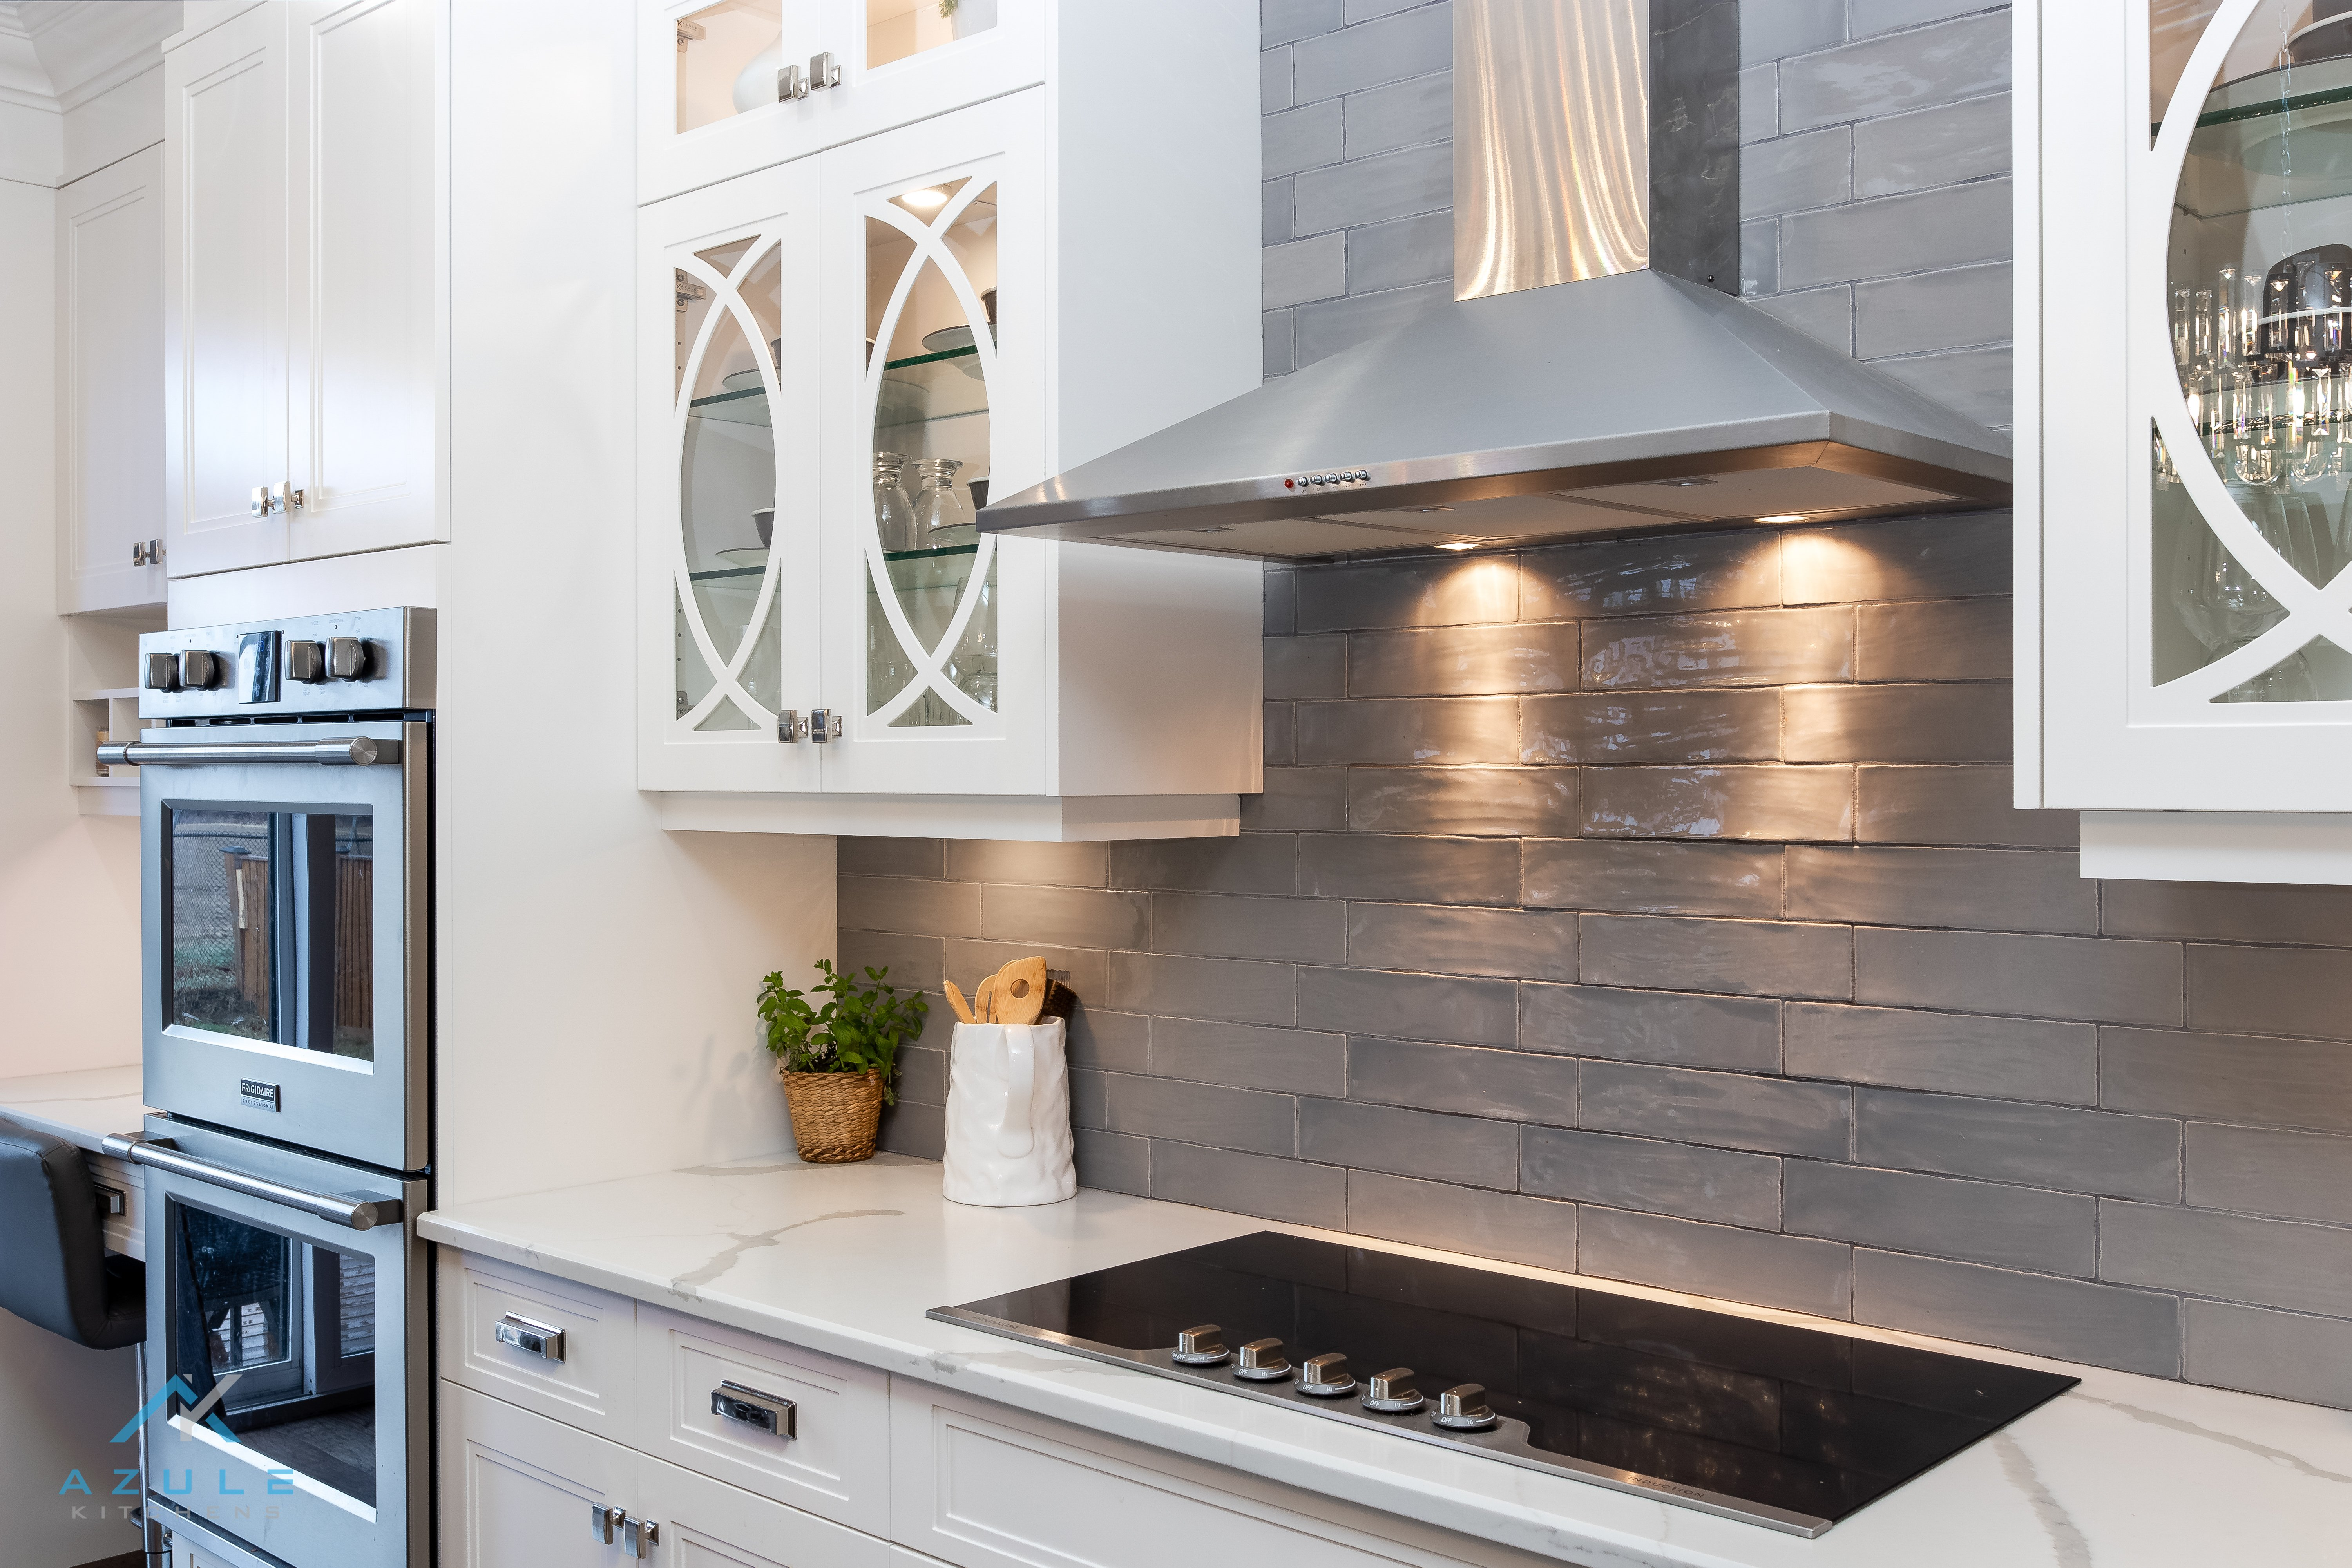 Azule Kitchens – Kitchen Cabinets and Open Shelving to Improve Kitchen Décor